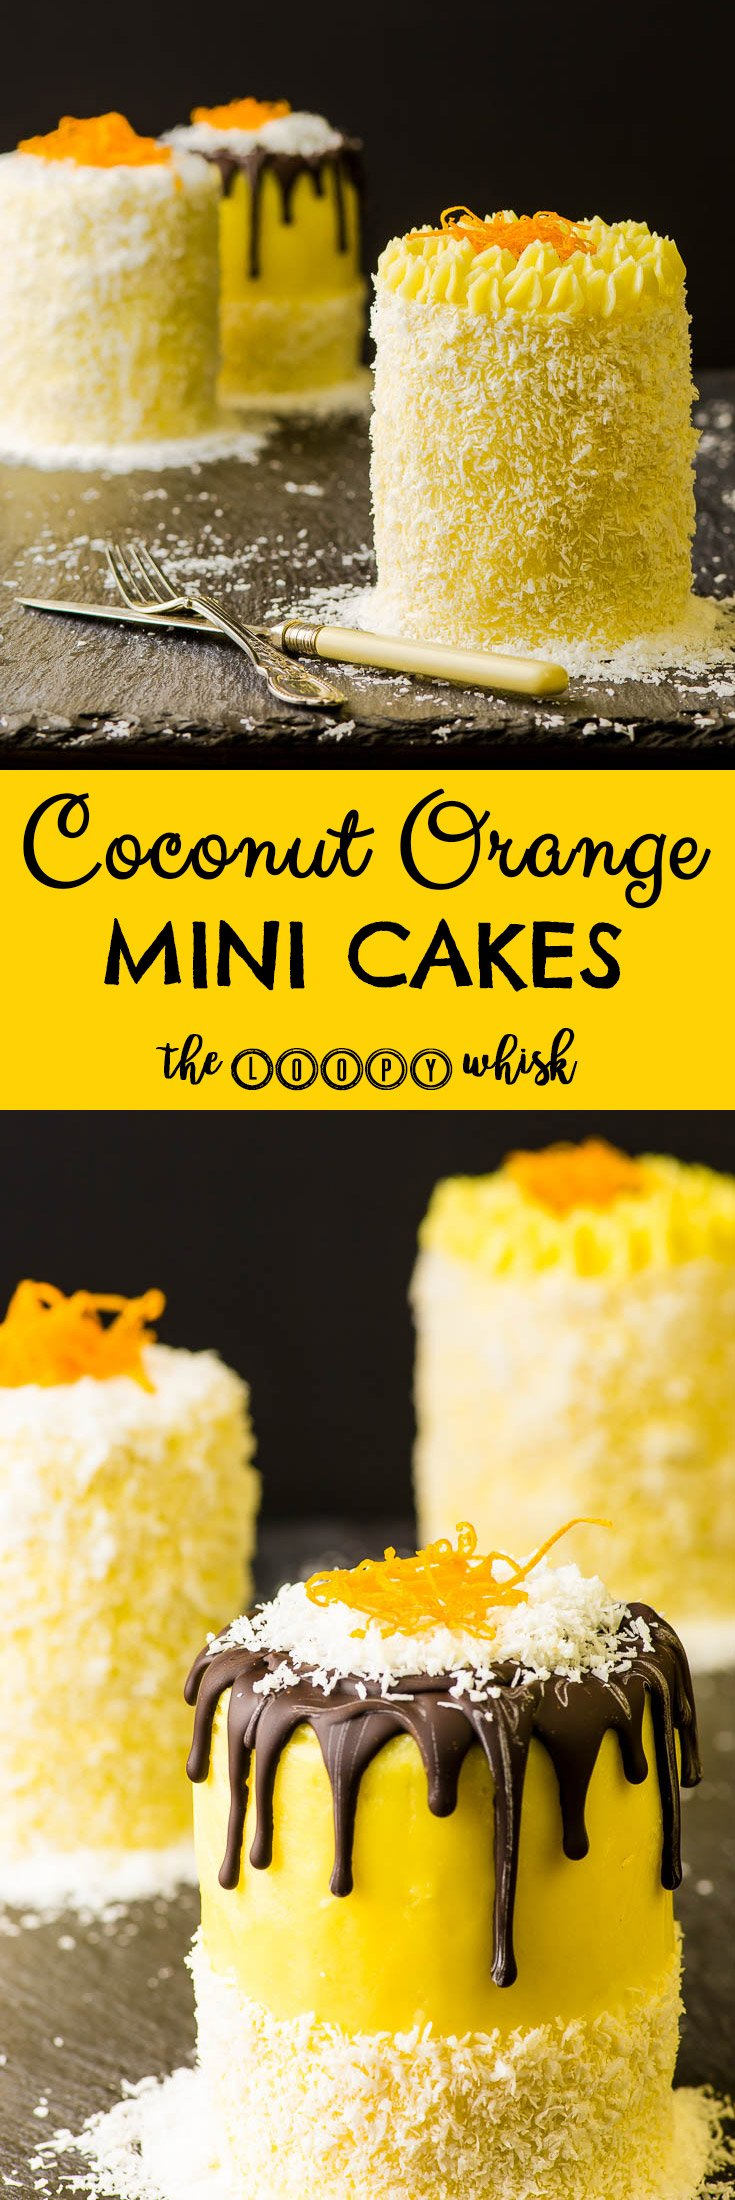 Coconut Orange Mini Cakes - They may be mini, but they have the taste of a cake giant. Fluffy yet dense sponge chock-full of dessicated coconut. Silky and rich ultra orange-y buttercream. Smooth orange curd with just the right amount of tartness. Textures galore. These mini cakes have the ability to transport you to an exotic island where you can enjoy the feeling of sand between you toes and the heat of the sun on your skin, all in a single bite.